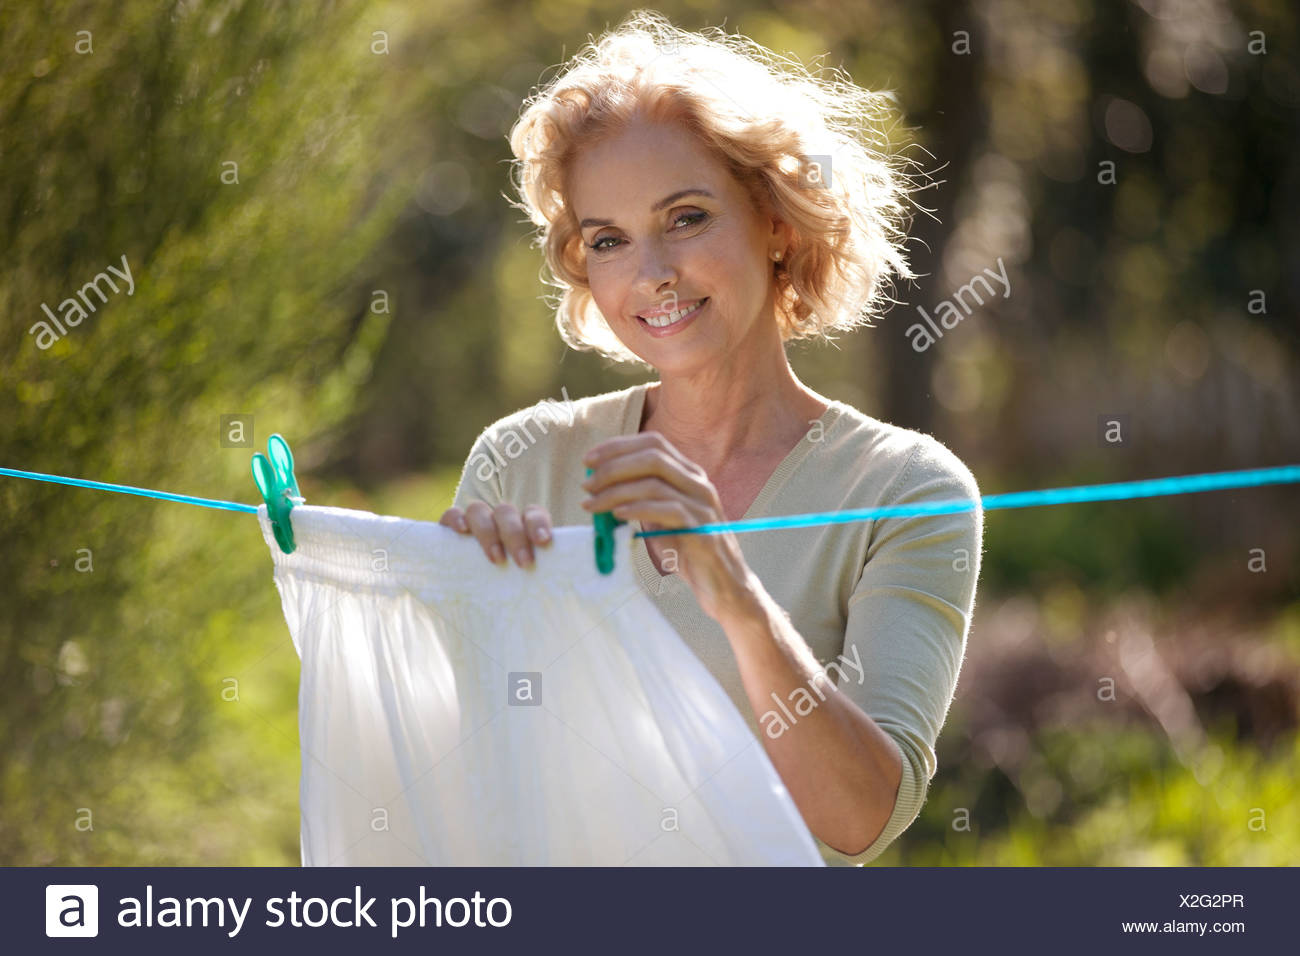 A mature woman pegging out washing on a washing line - Stock Image